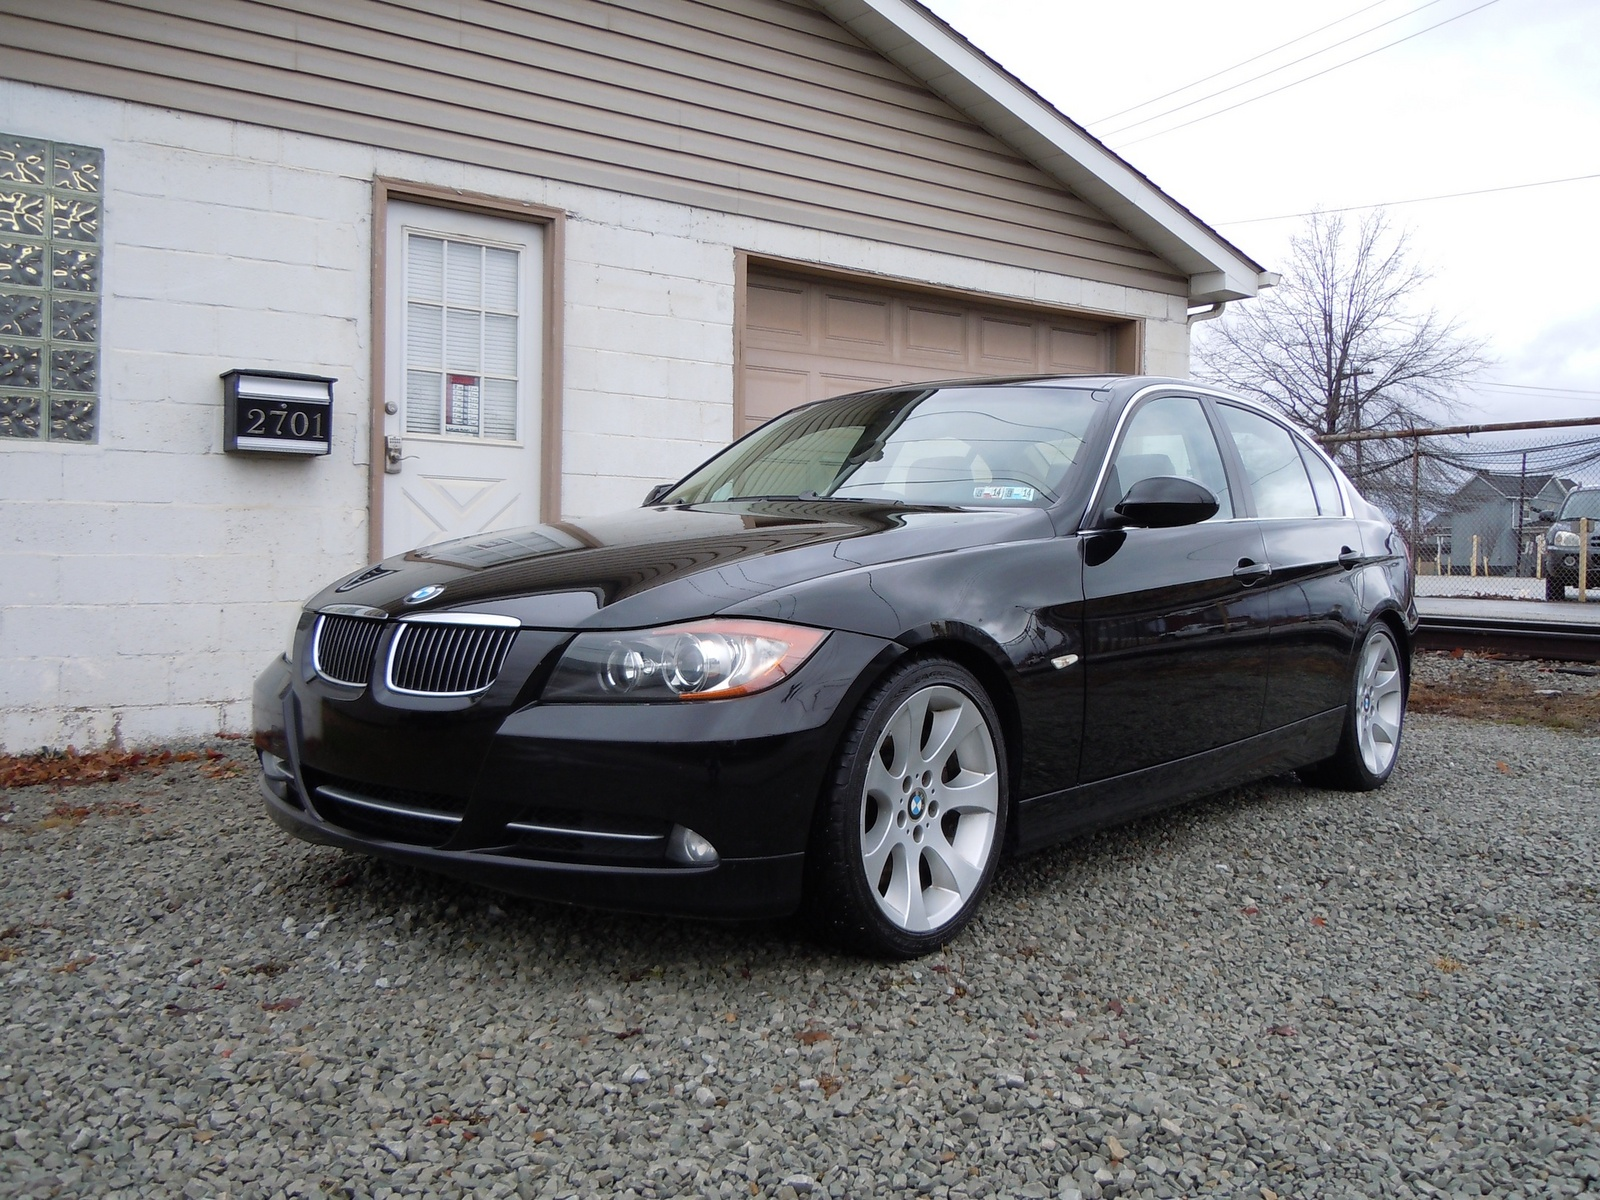 BMW 3 series 335is 2008 photo - 10